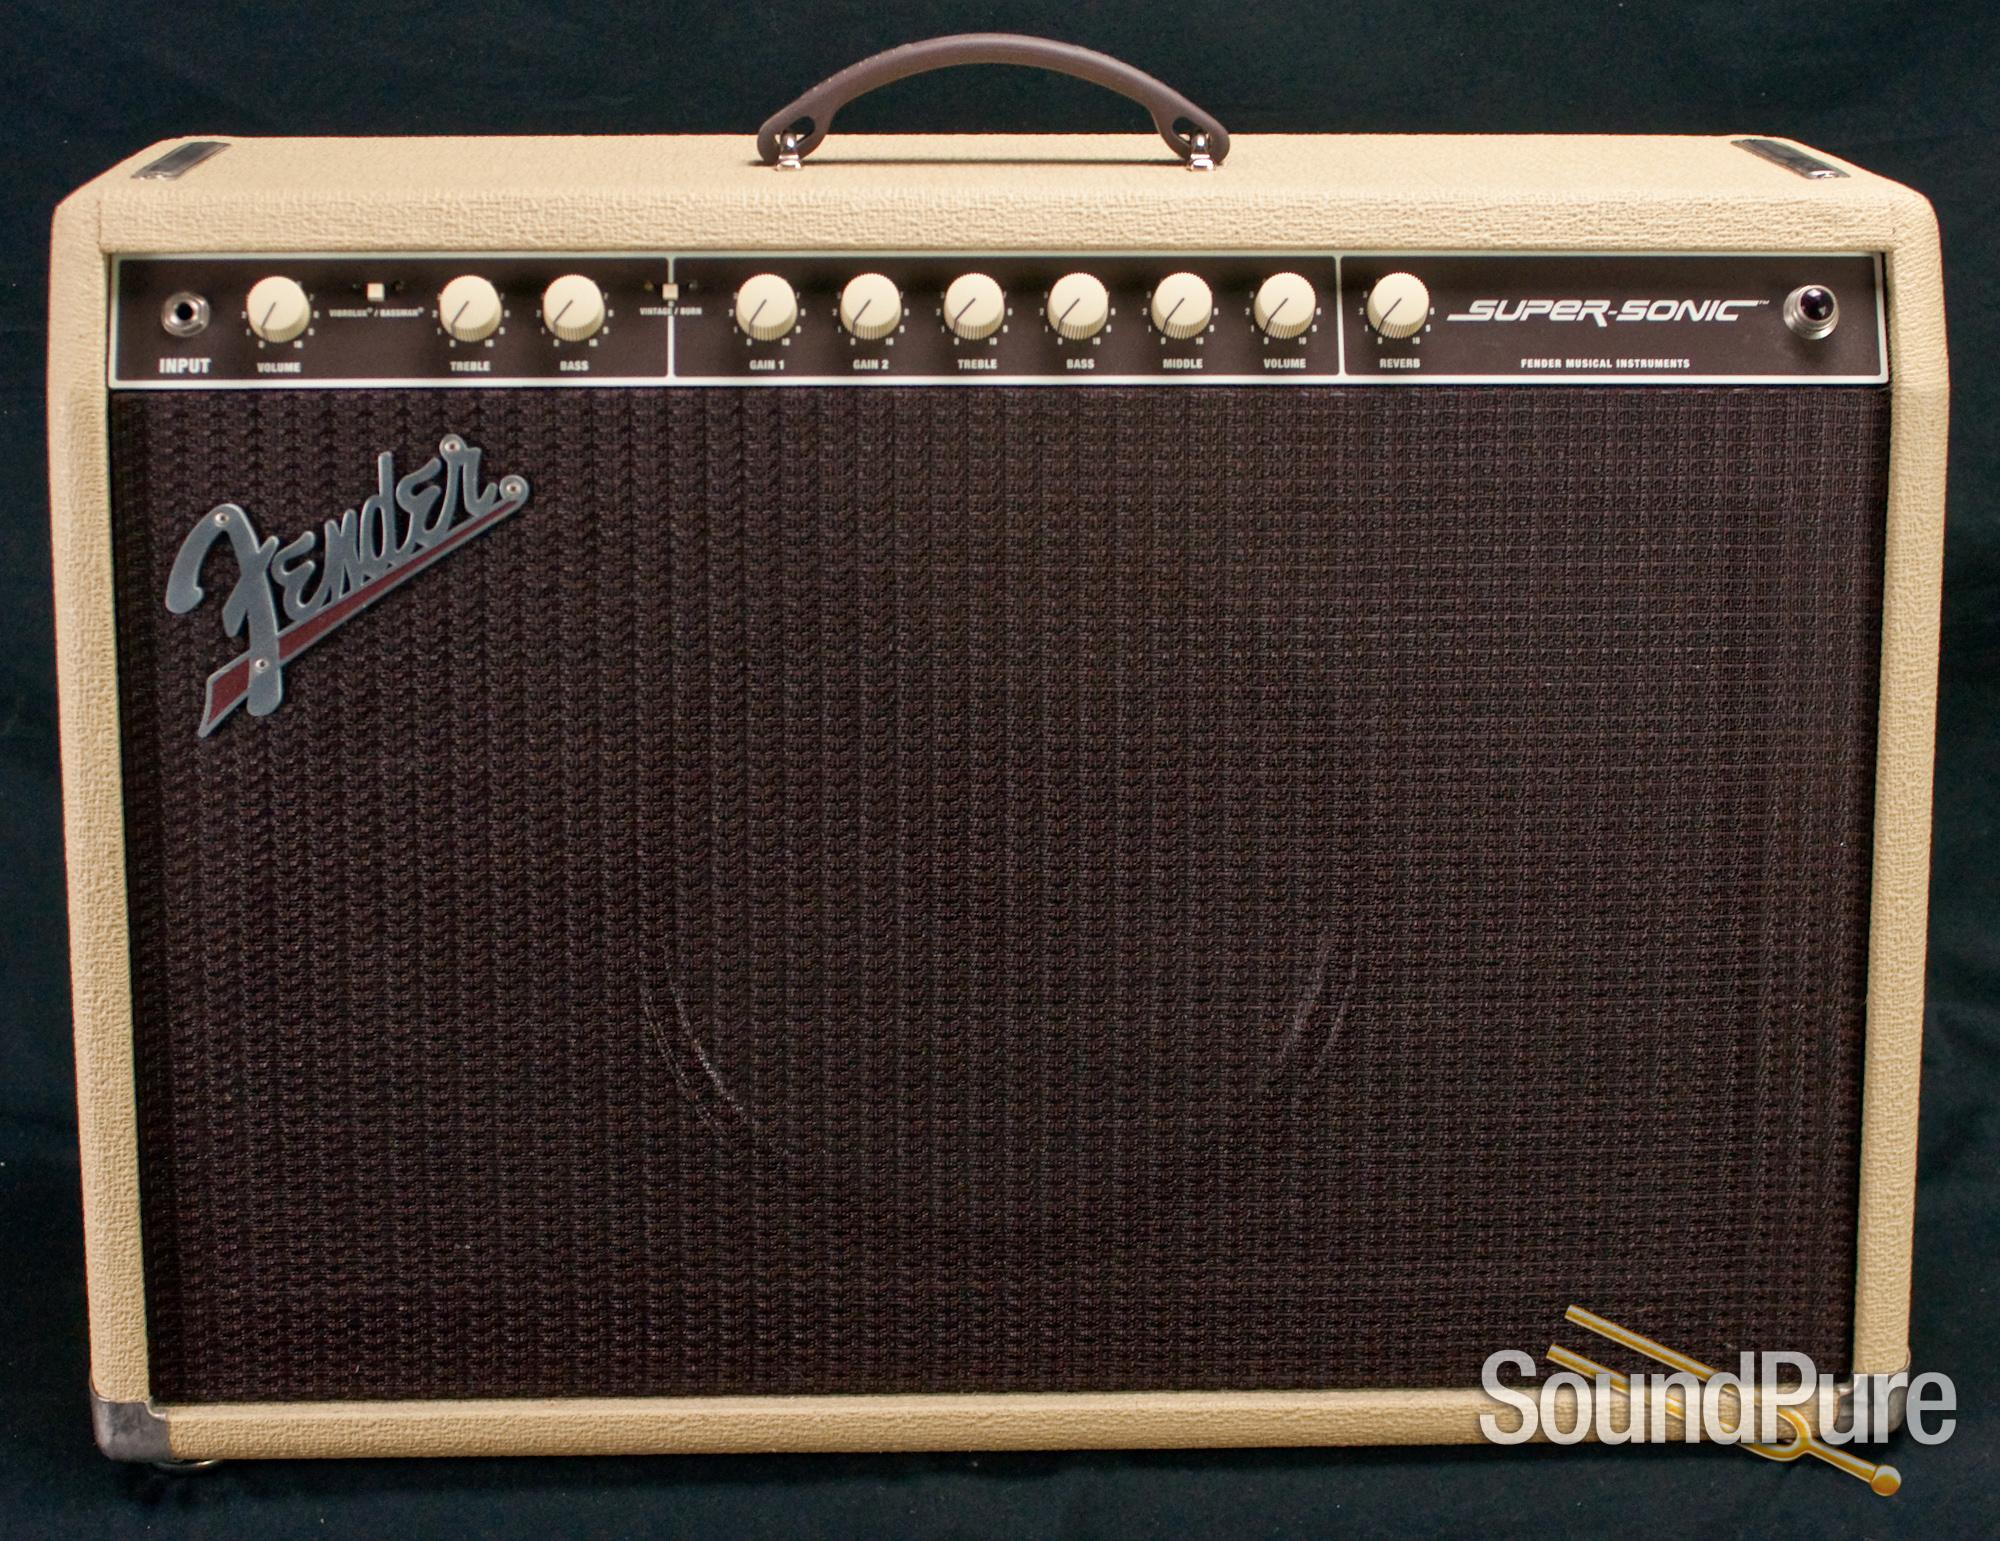 Fender Super Sonic 60w 1x12 Blonde Combo Amp Used Bass Amplifier Luthier Certification For Instruments